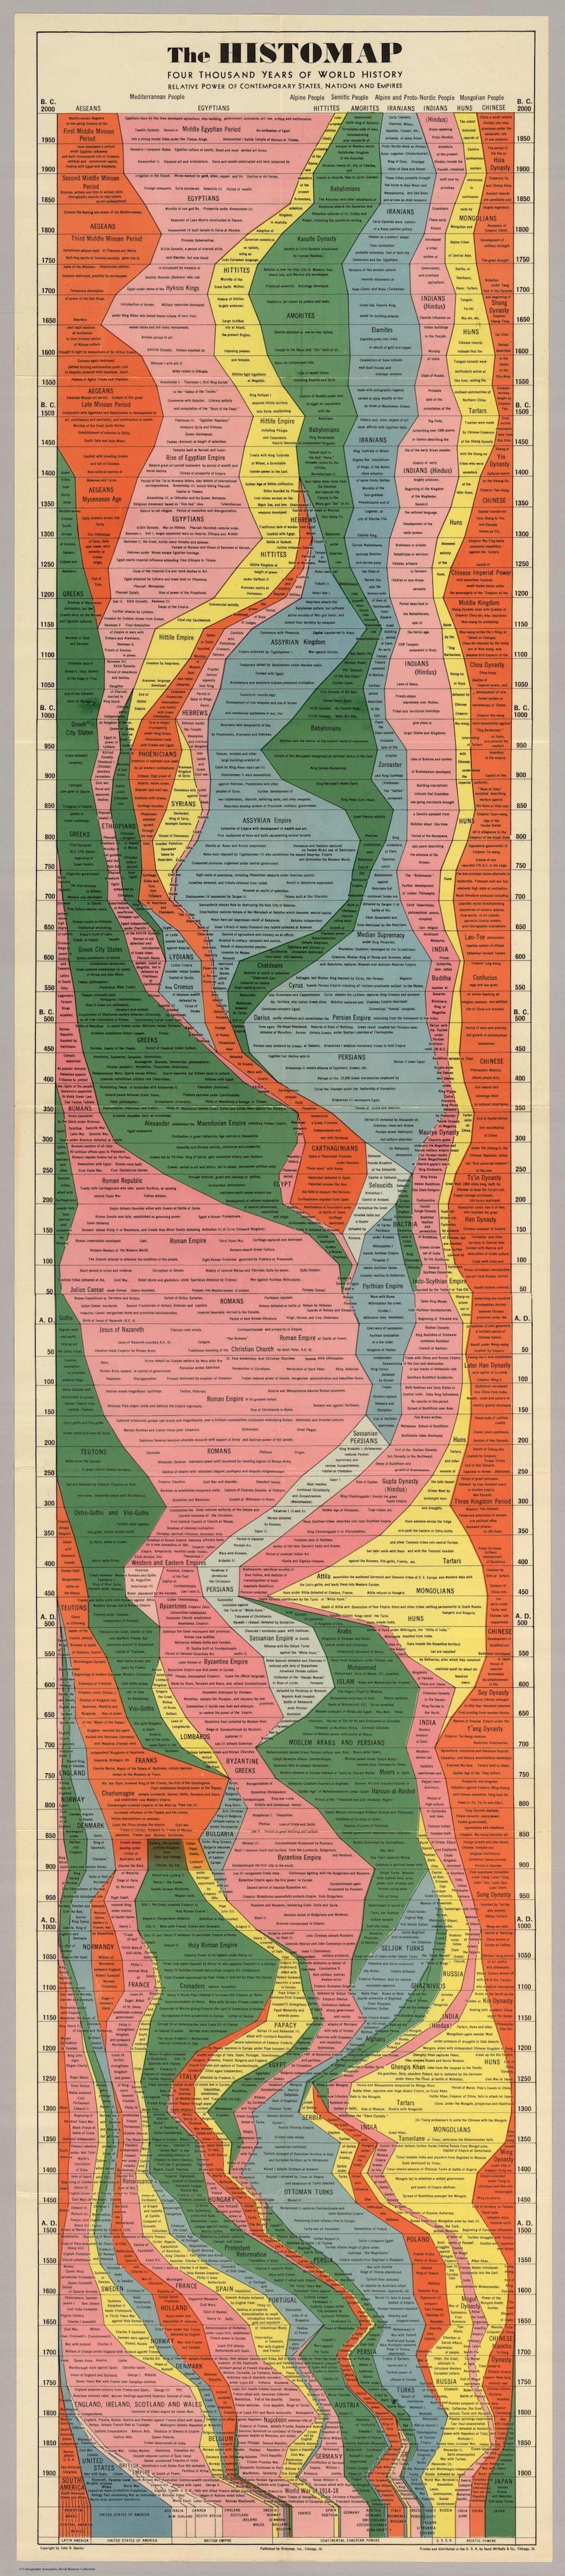 The 1931 Histomap: The entire history of the world distilled into a single map/chart.